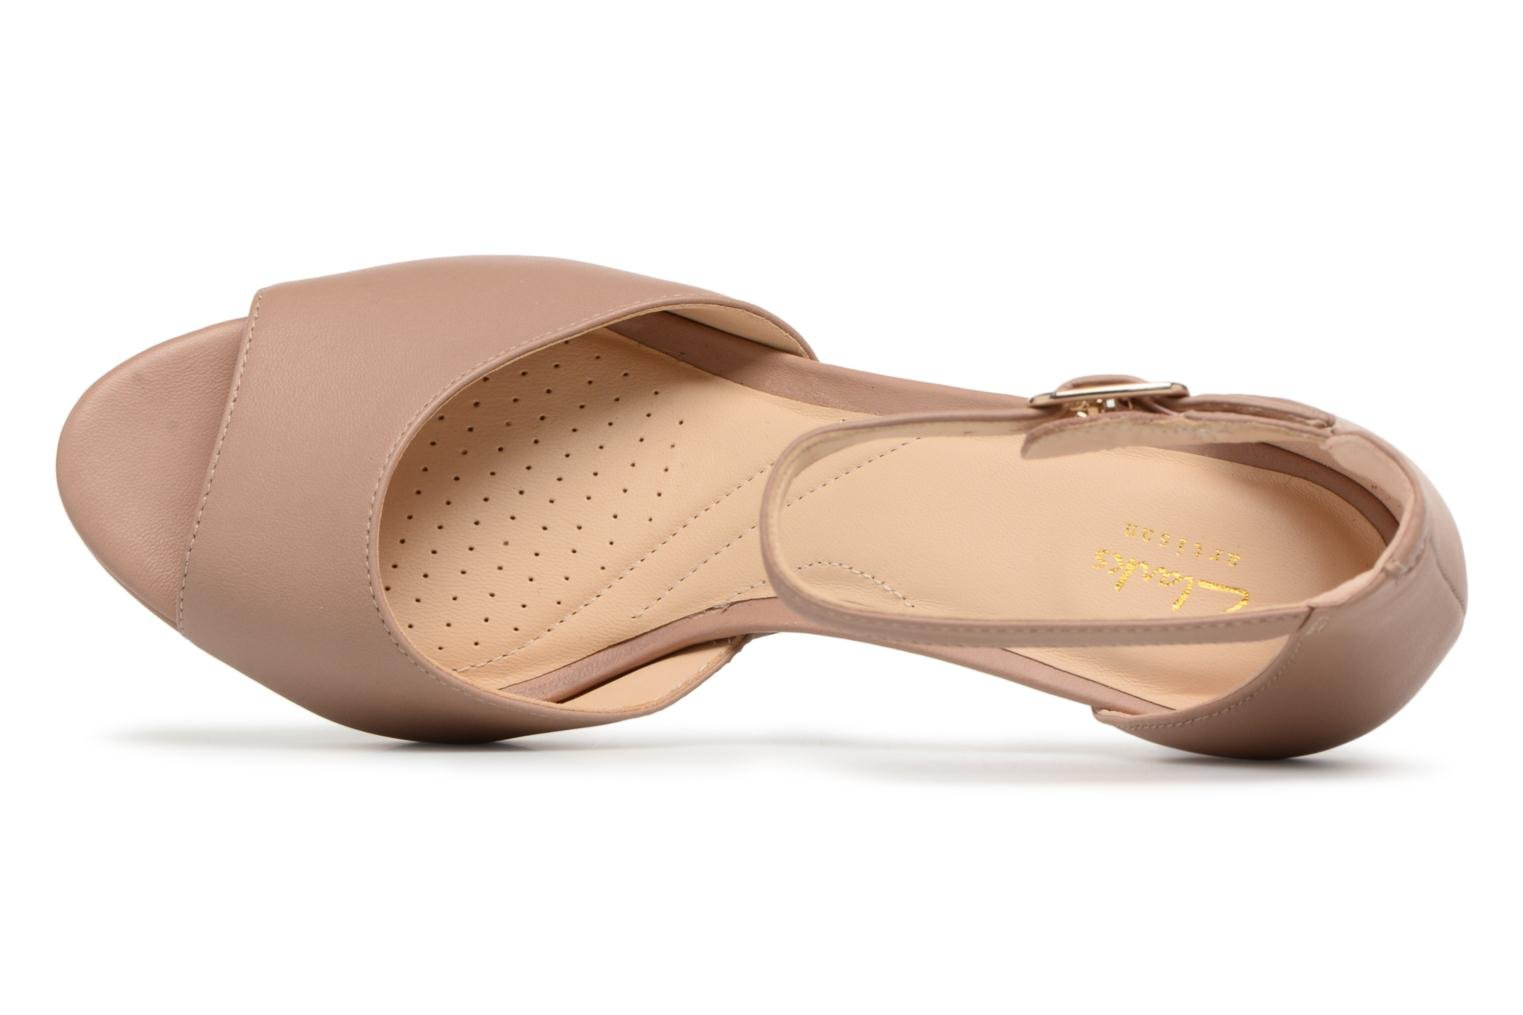 Mayra Dove Beige leather